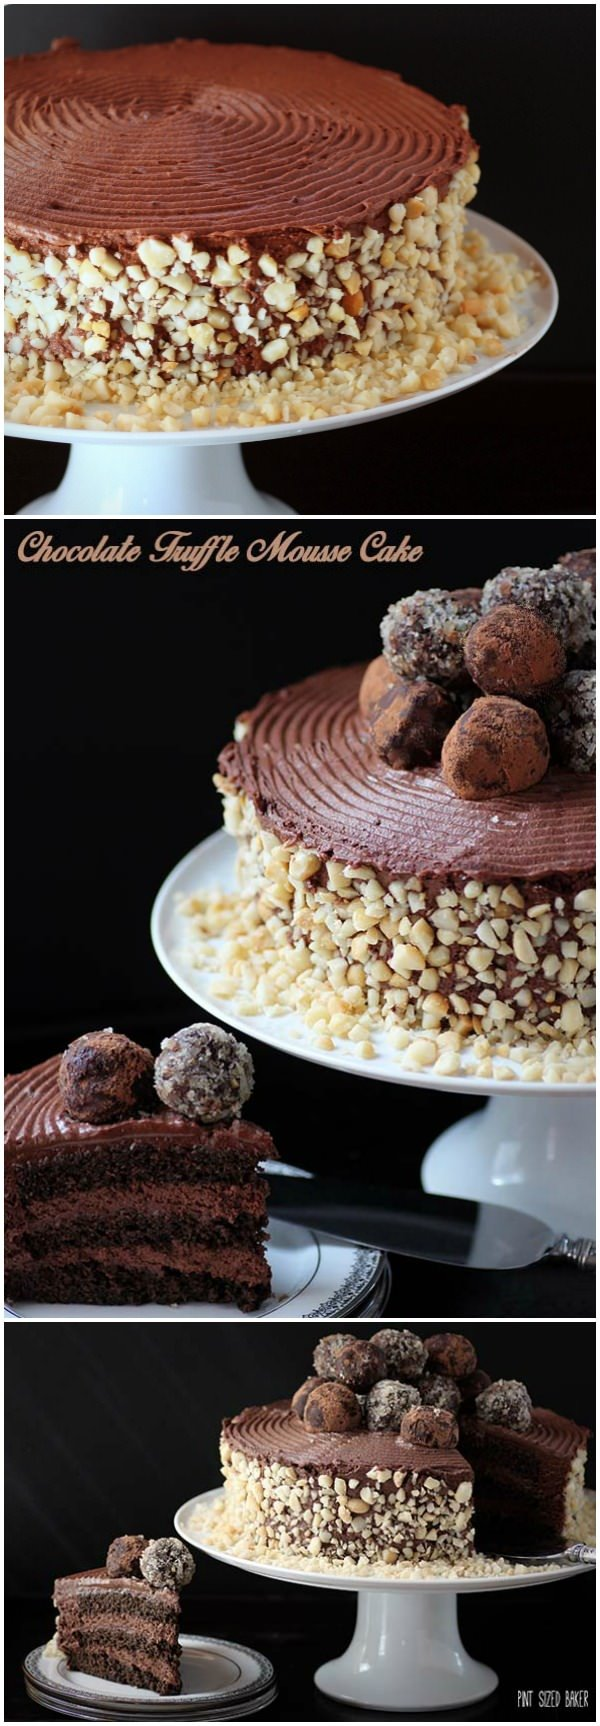 A Chocolate Lovers utopia. This chocolate mousse cake with truffles on top is just what the doctor ordered. It's perfect for a decadent dessert!